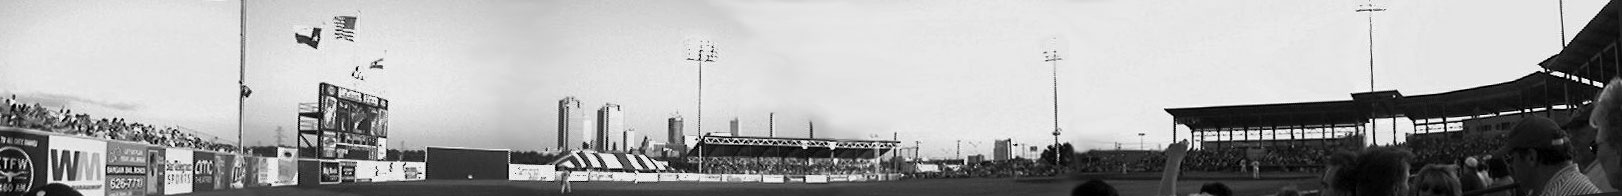 Fort Worth Cats' LaGrave Field; Click for full size